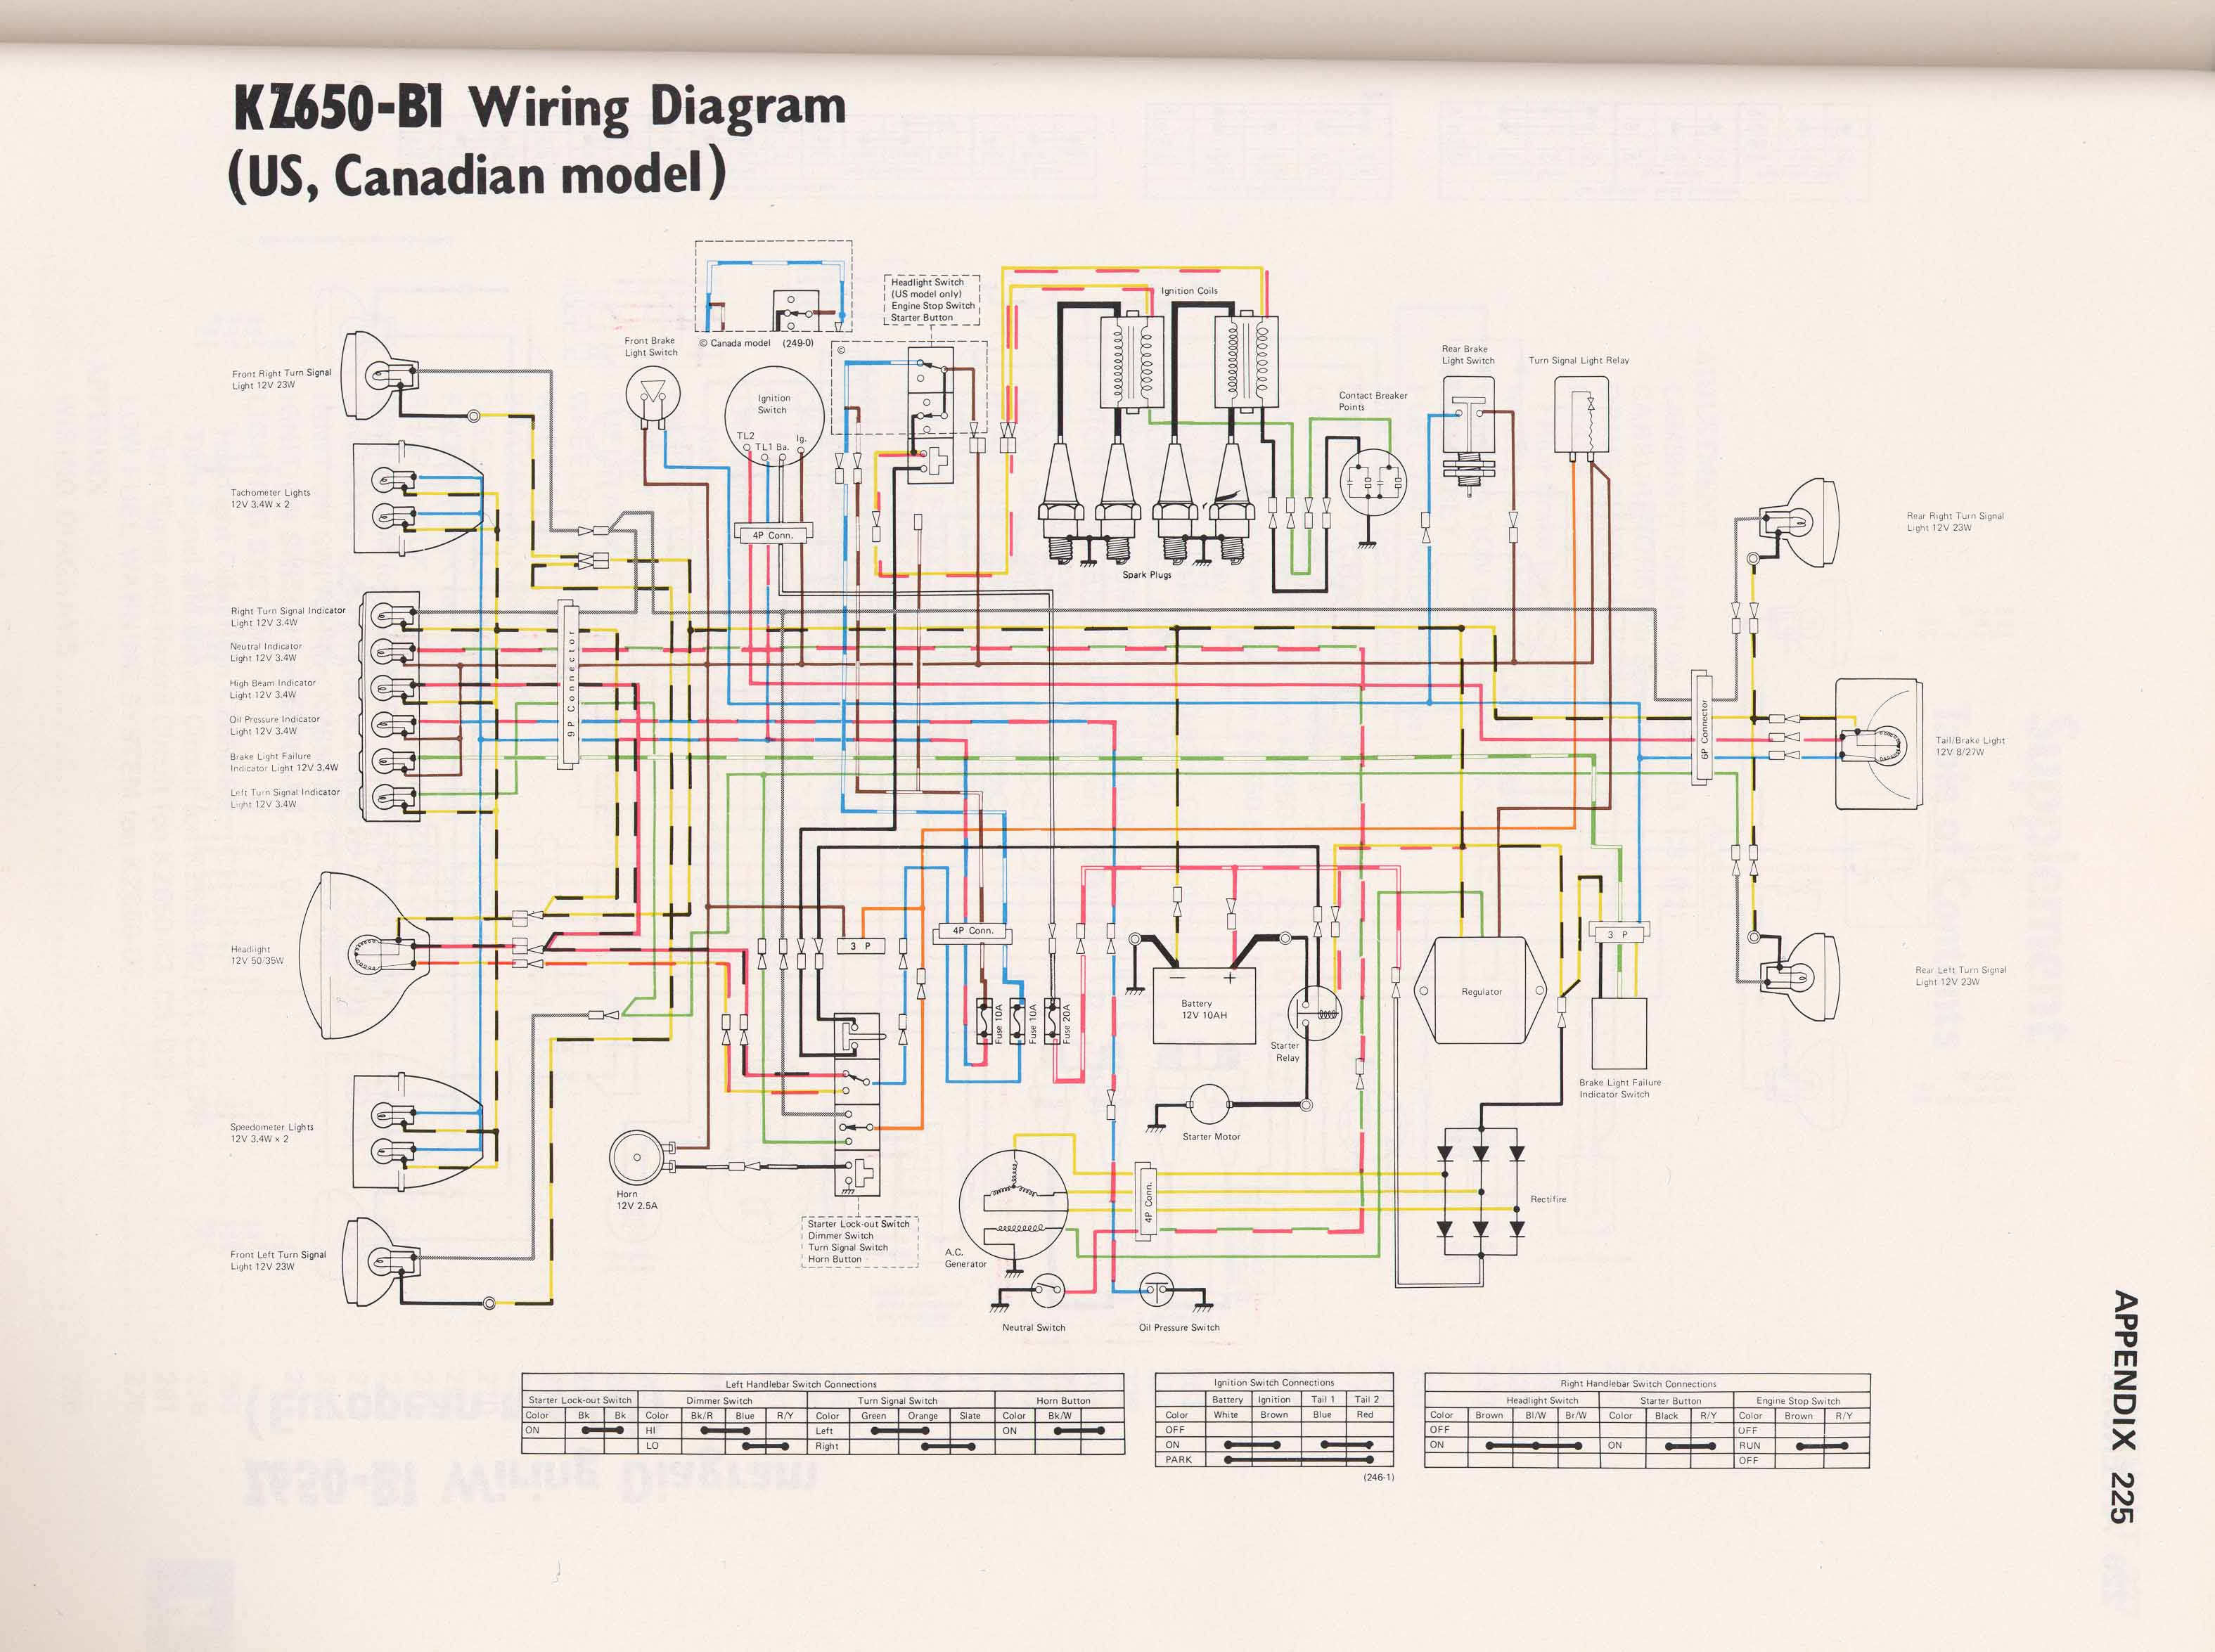 KZ650 B1 100 [ car ignition wiring diagram ] affordable nice 1968 Wiring Harness Diagram at n-0.co